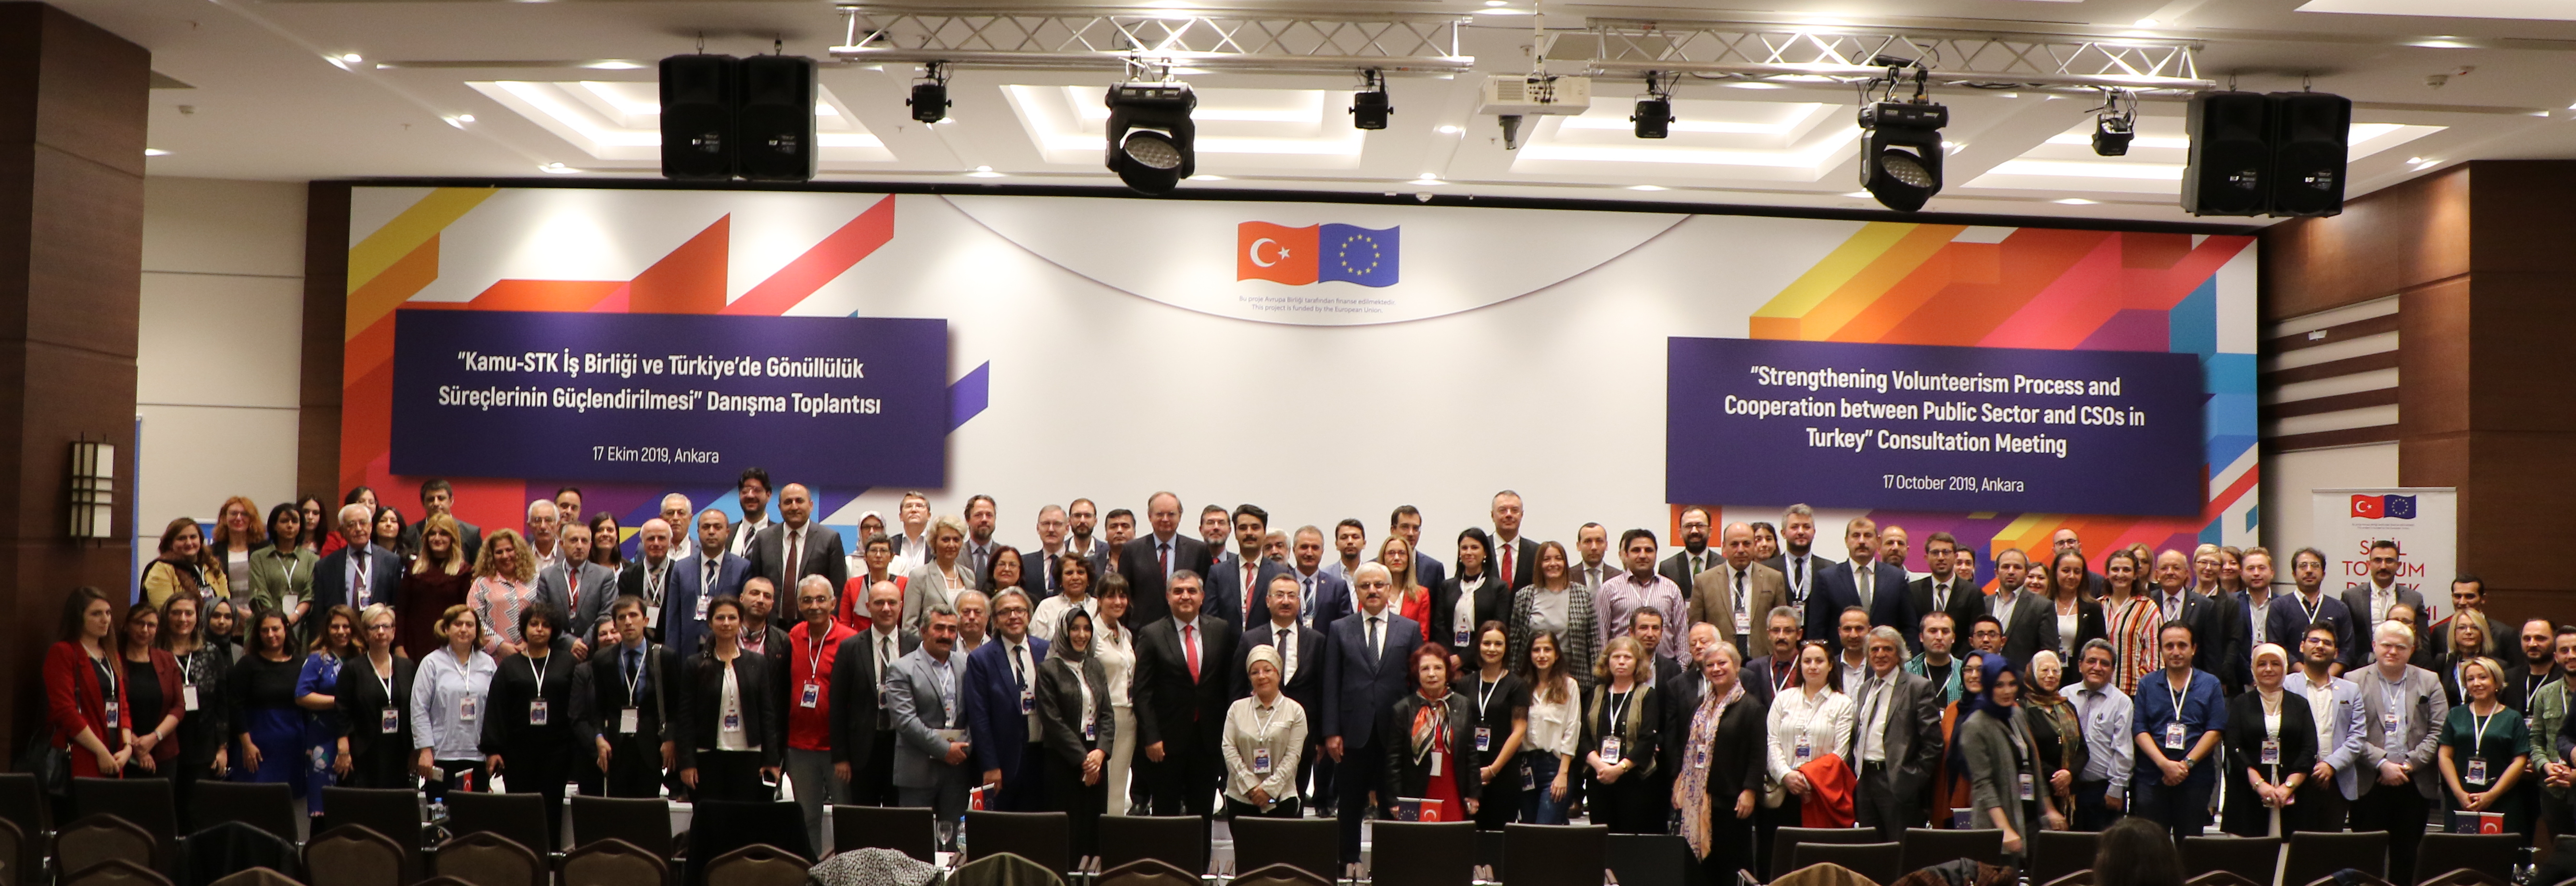 Public Sector and Civil Society Organizations Met in Ankara for Strengthening and Dissemination of Volunteerism in Turkey